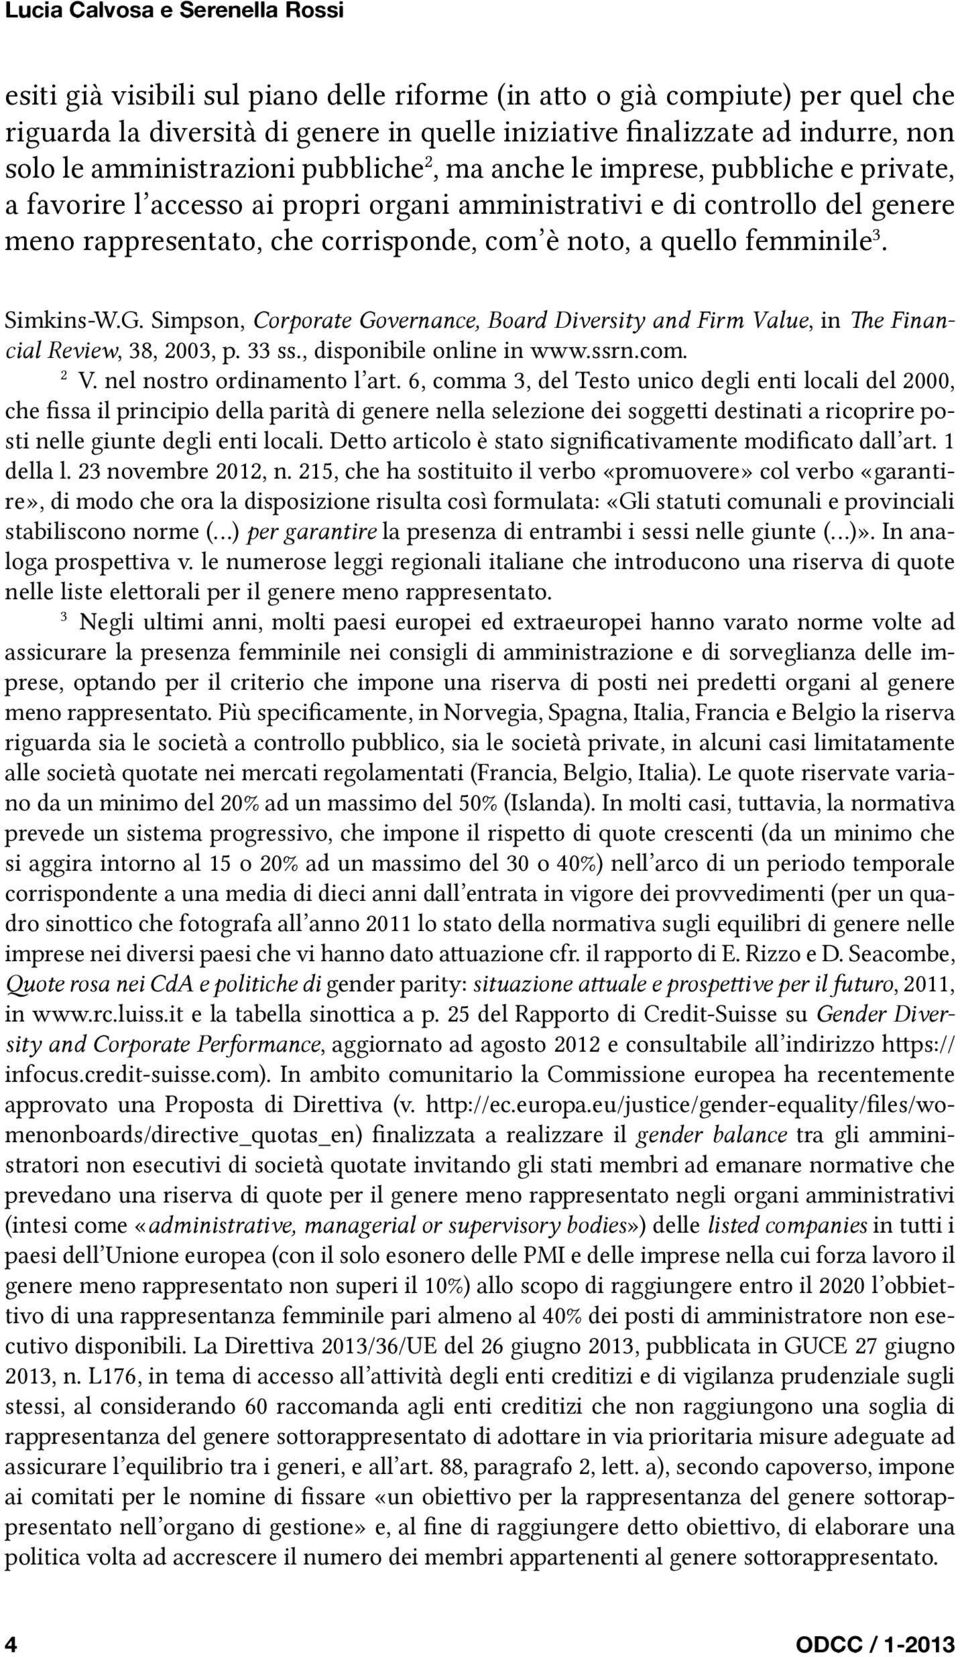 noto, a quello femminile 3. Simkins-W.G. Simpson, Corporate Governance, Board Diversity and Firm Value, in The Financial Review, 38, 2003, p. 33 ss., disponibile online in www.ssrn.com. 2 V.